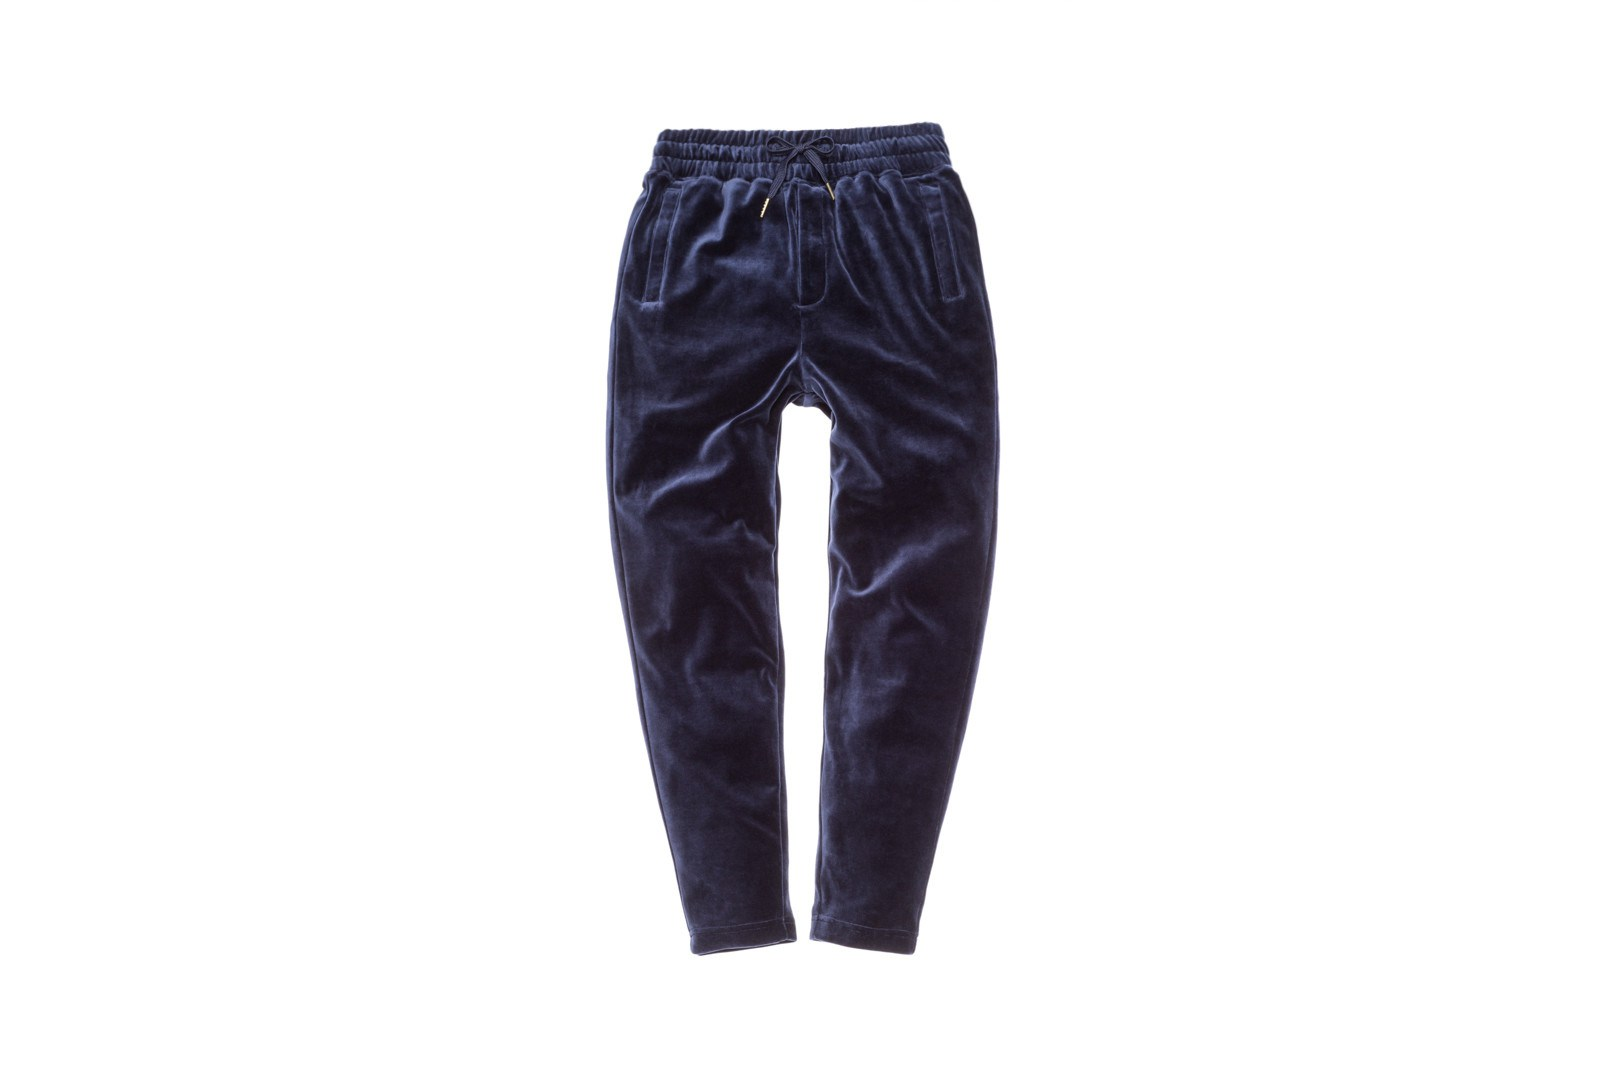 kith-special-velour-capsule-collection-5